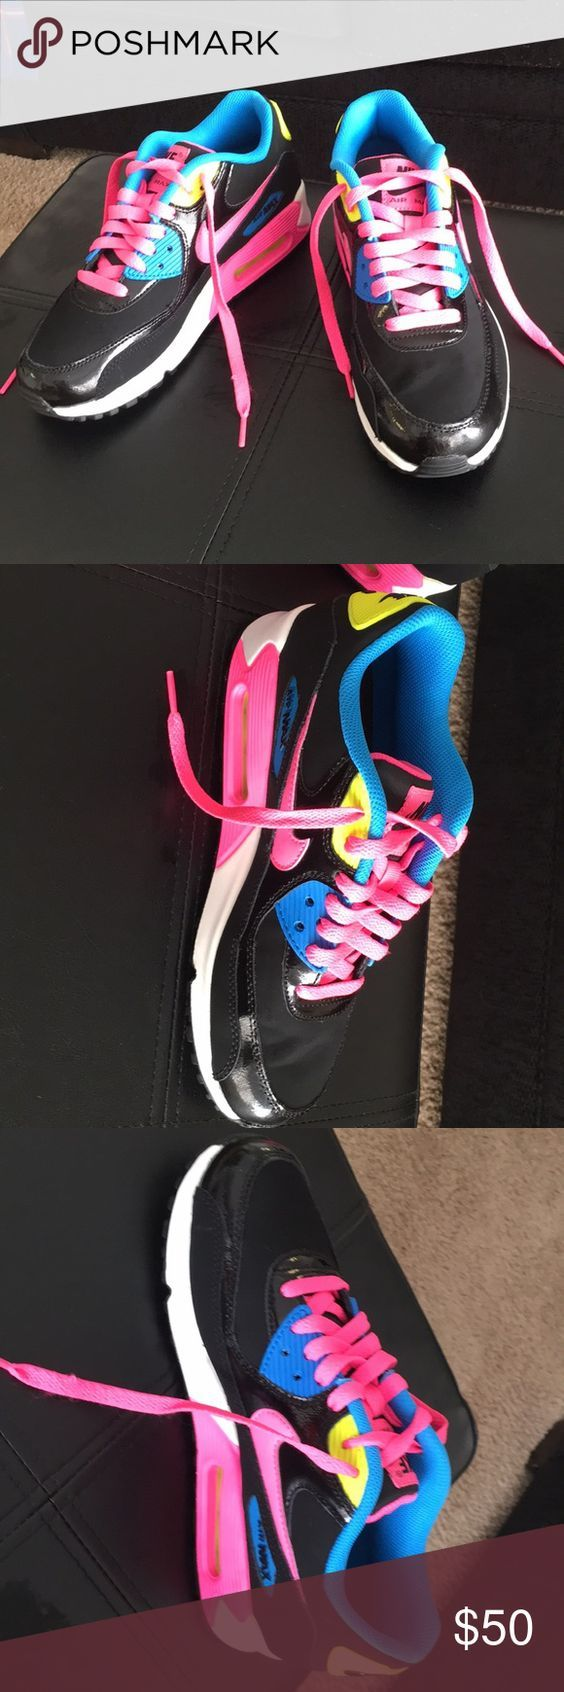 Nike Air Max in neon colors Youth size 5.5, but fits a woman's 6.5. Brand new. Only tried on in store. Cushiony and stylish. Nike Shoes Sneakers